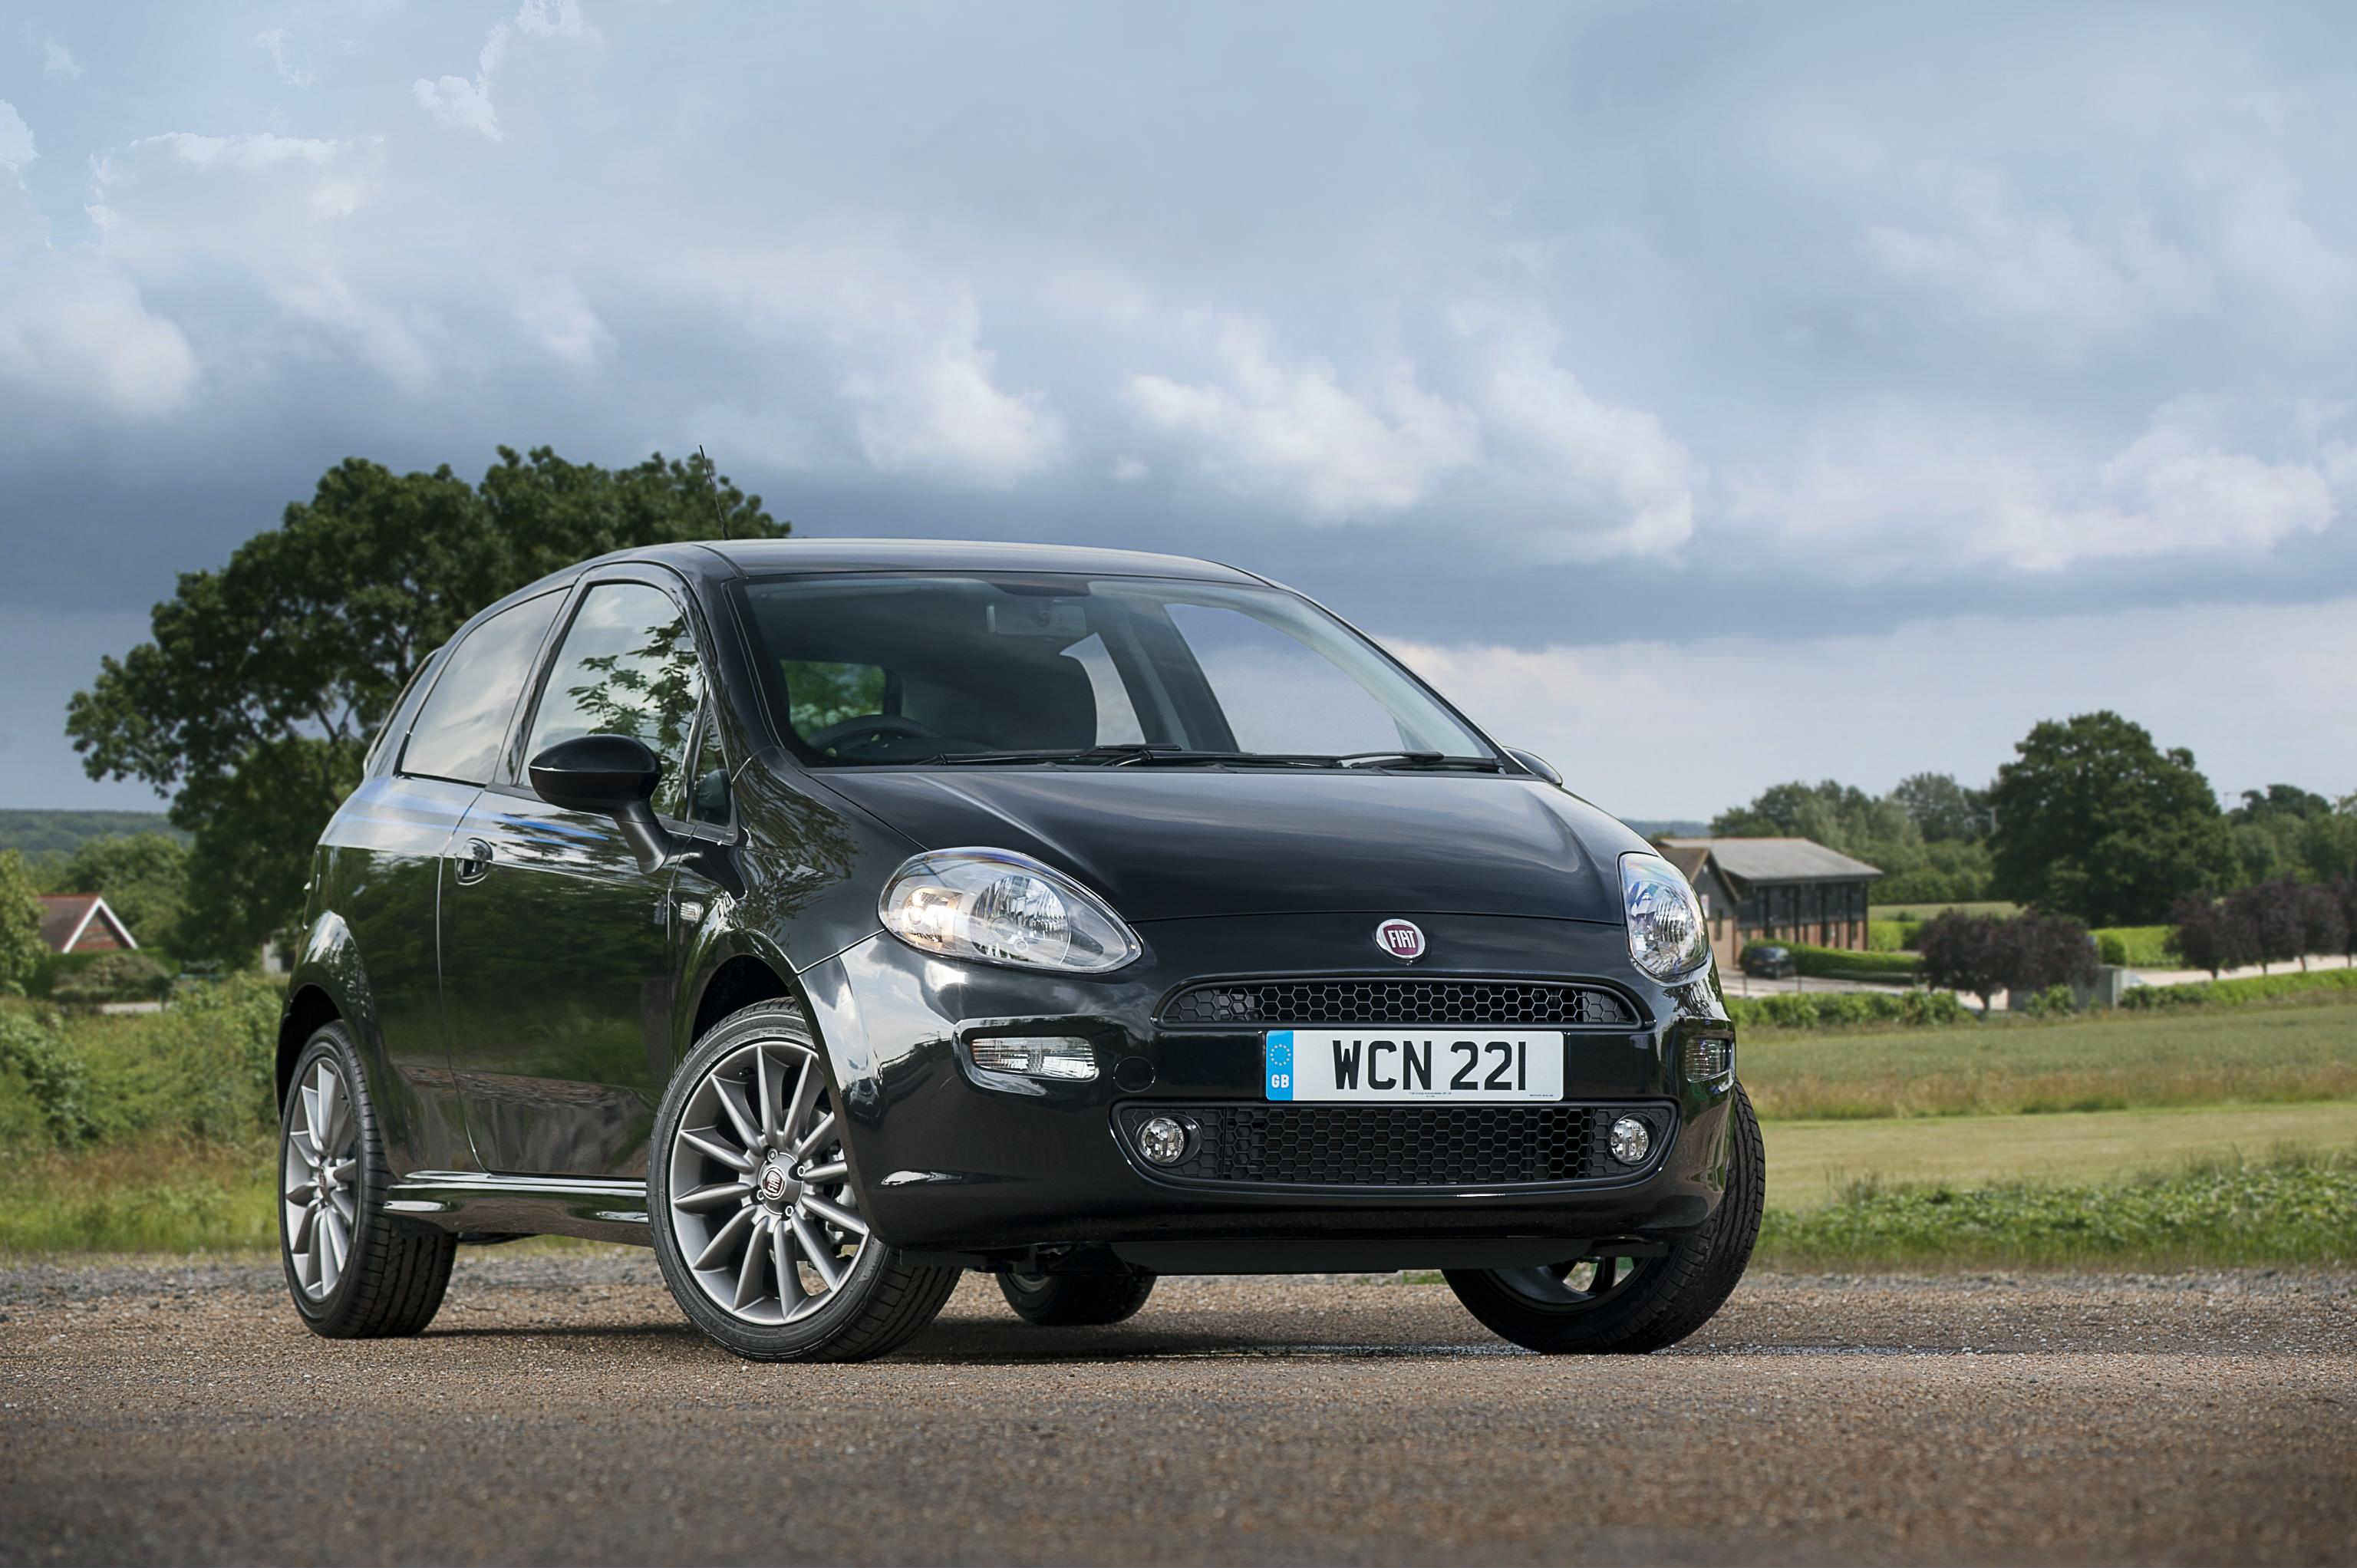 image of a black fiat punto car exterior